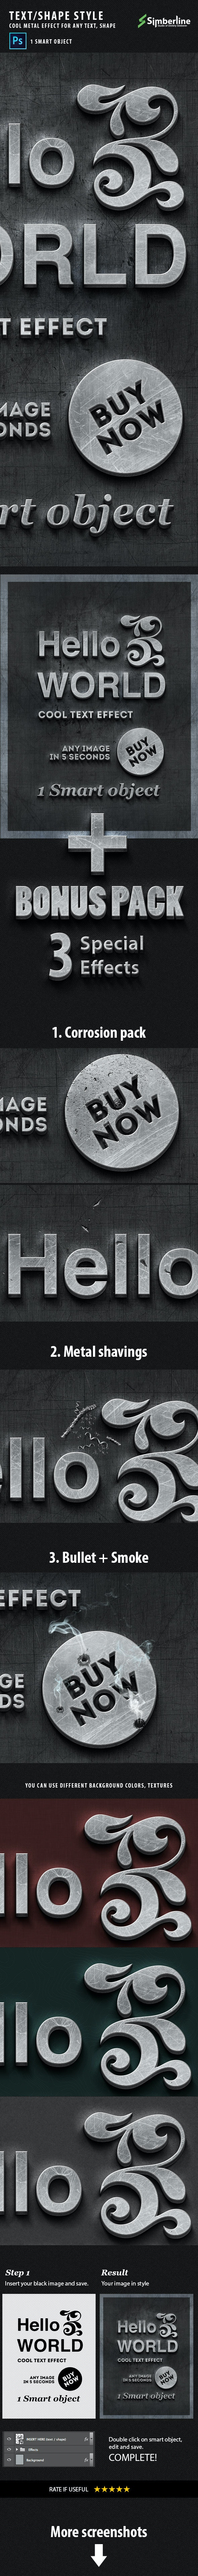 Metal Style - Smart Template - Text Effects Styles